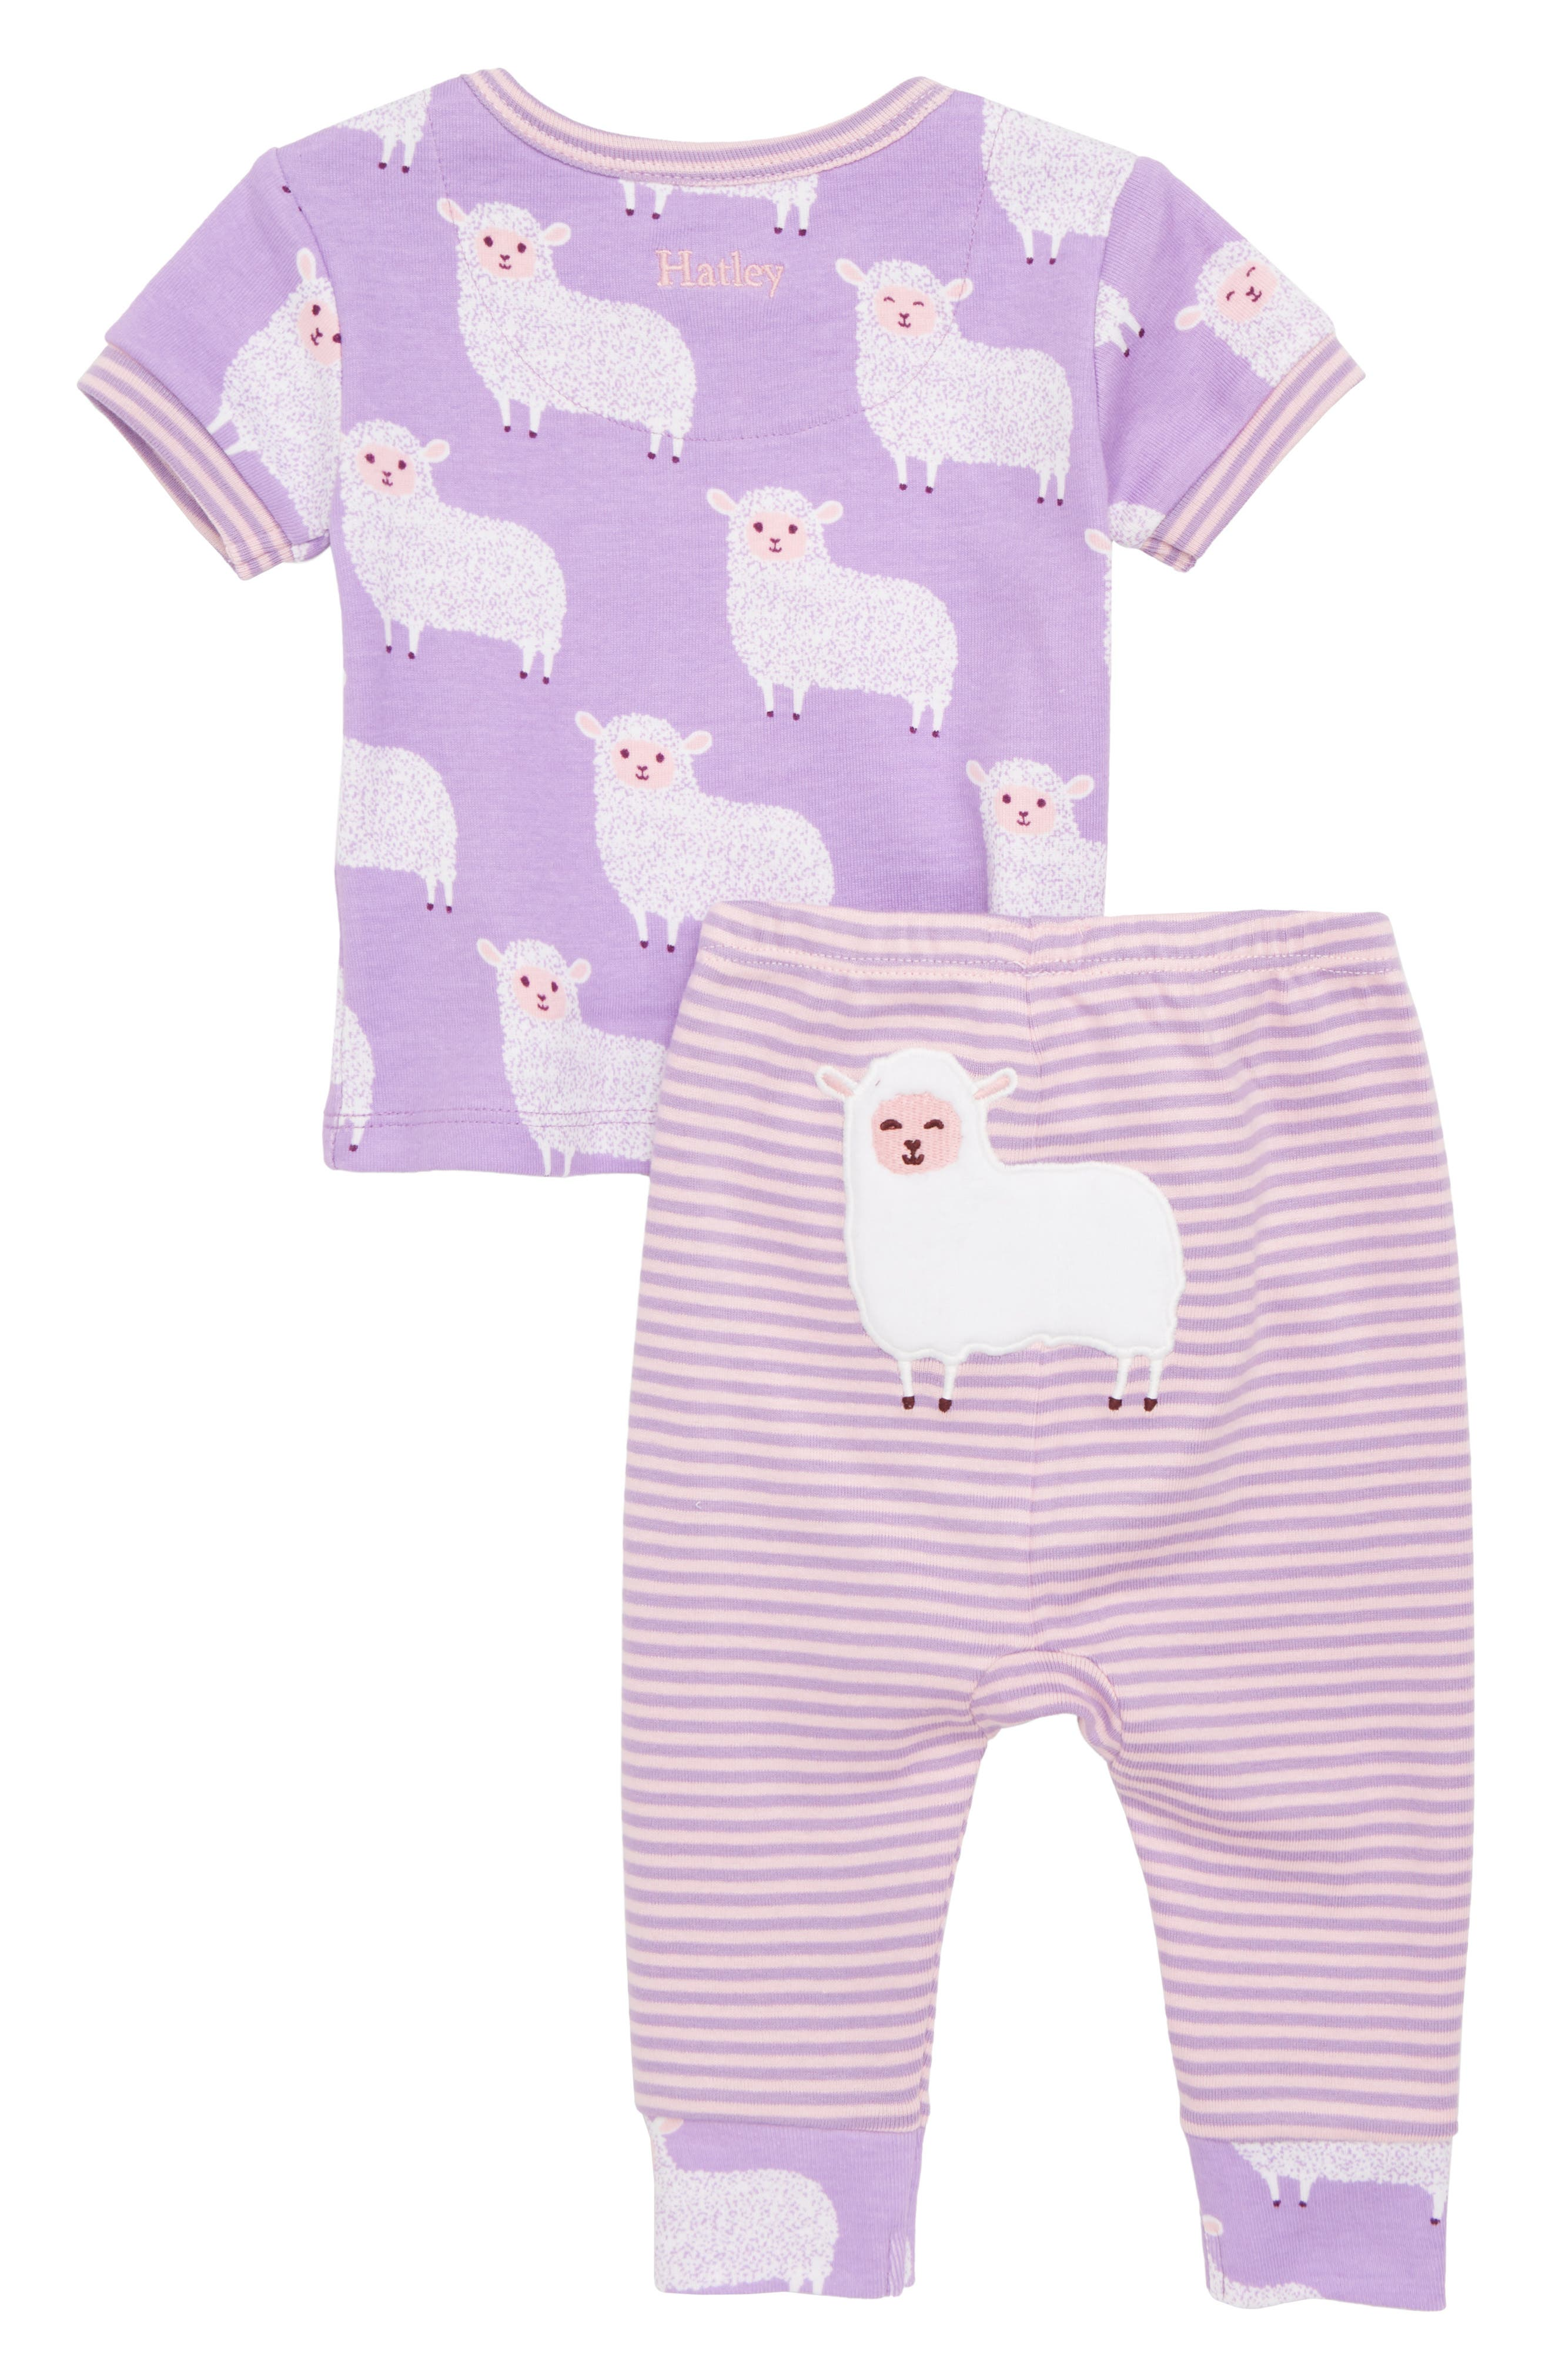 Counting Sheep Fitted Two-Piece Pajamas,                             Alternate thumbnail 2, color,